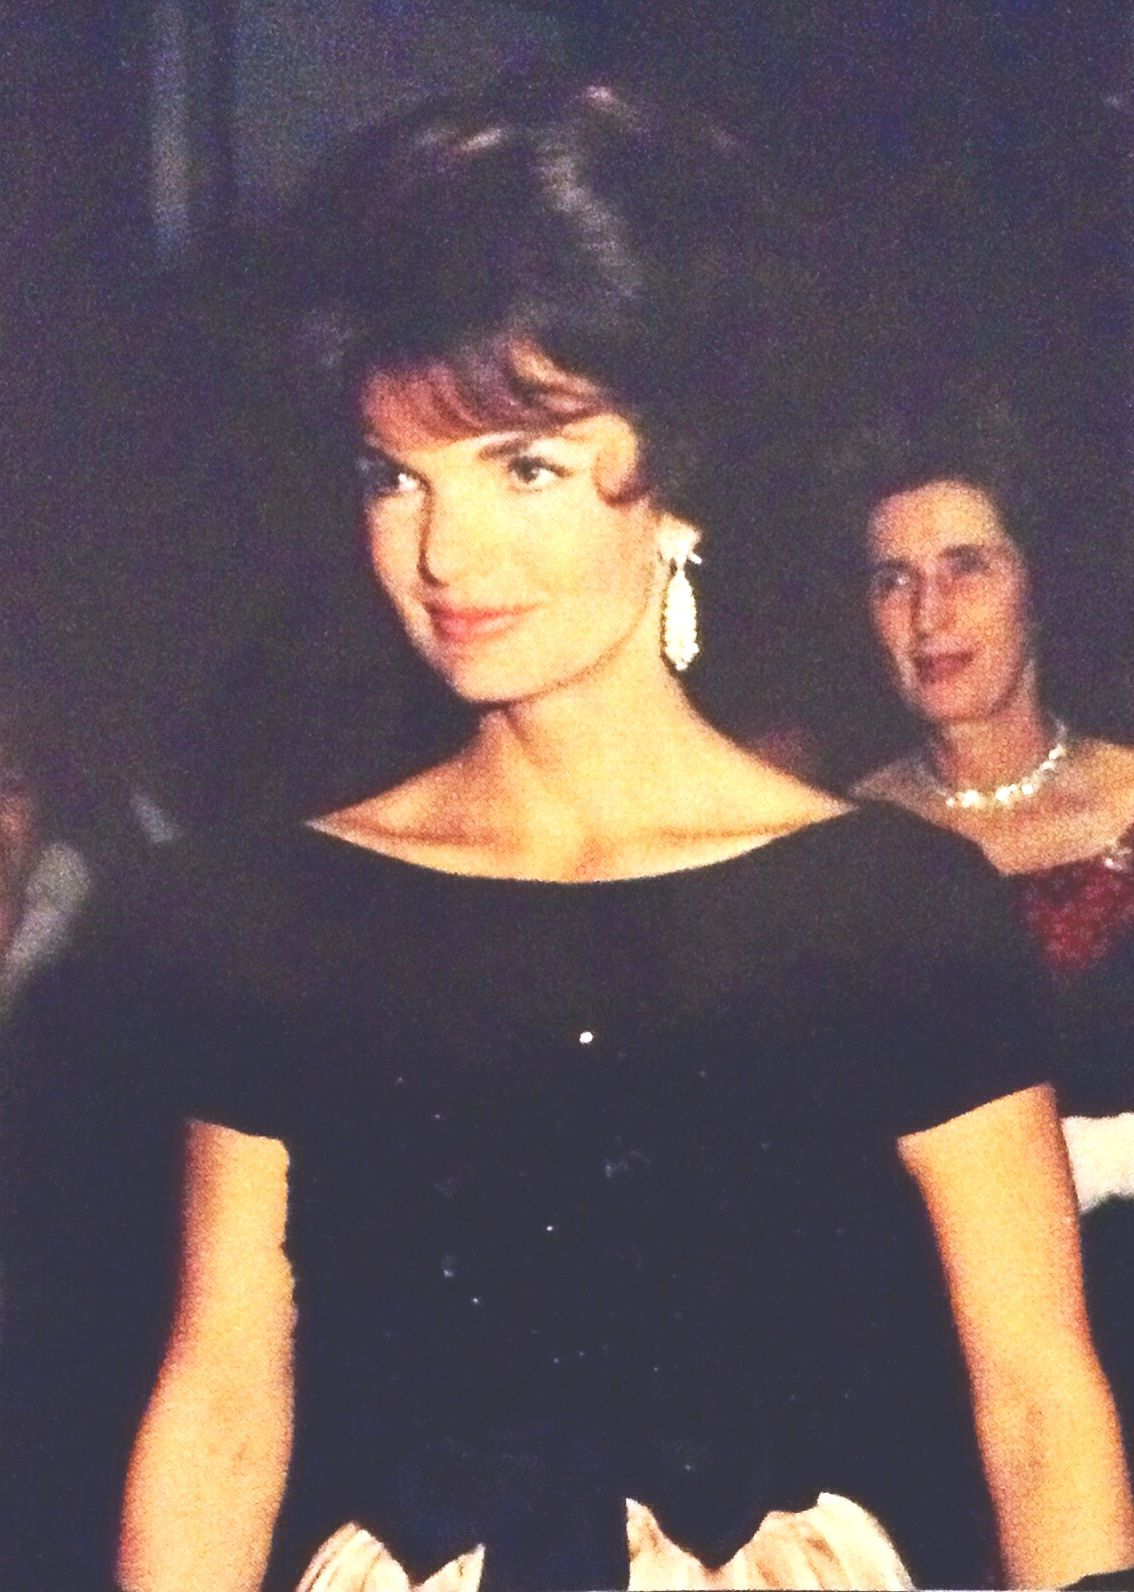 """Jacqueline Lee Kennedy Onassis known as """"Jackie"""" (July 28, 1929 – May 19, 1994) For the final two decades of her life, Jacqueline Kennedy Onassis had a career as a book editor. She is remembered for her contributions to the arts and preservation of historic architecture, her style, elegance, and grace She was a fashion icon."""